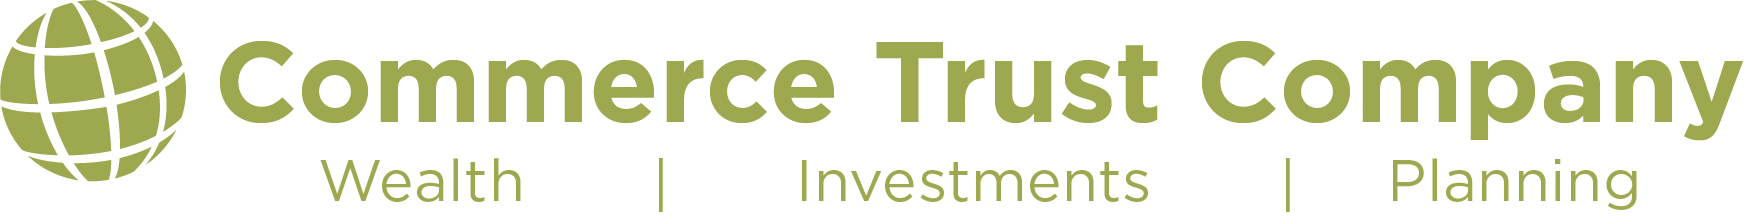 Hole Sponsor - Commerce Trust Company.jpg